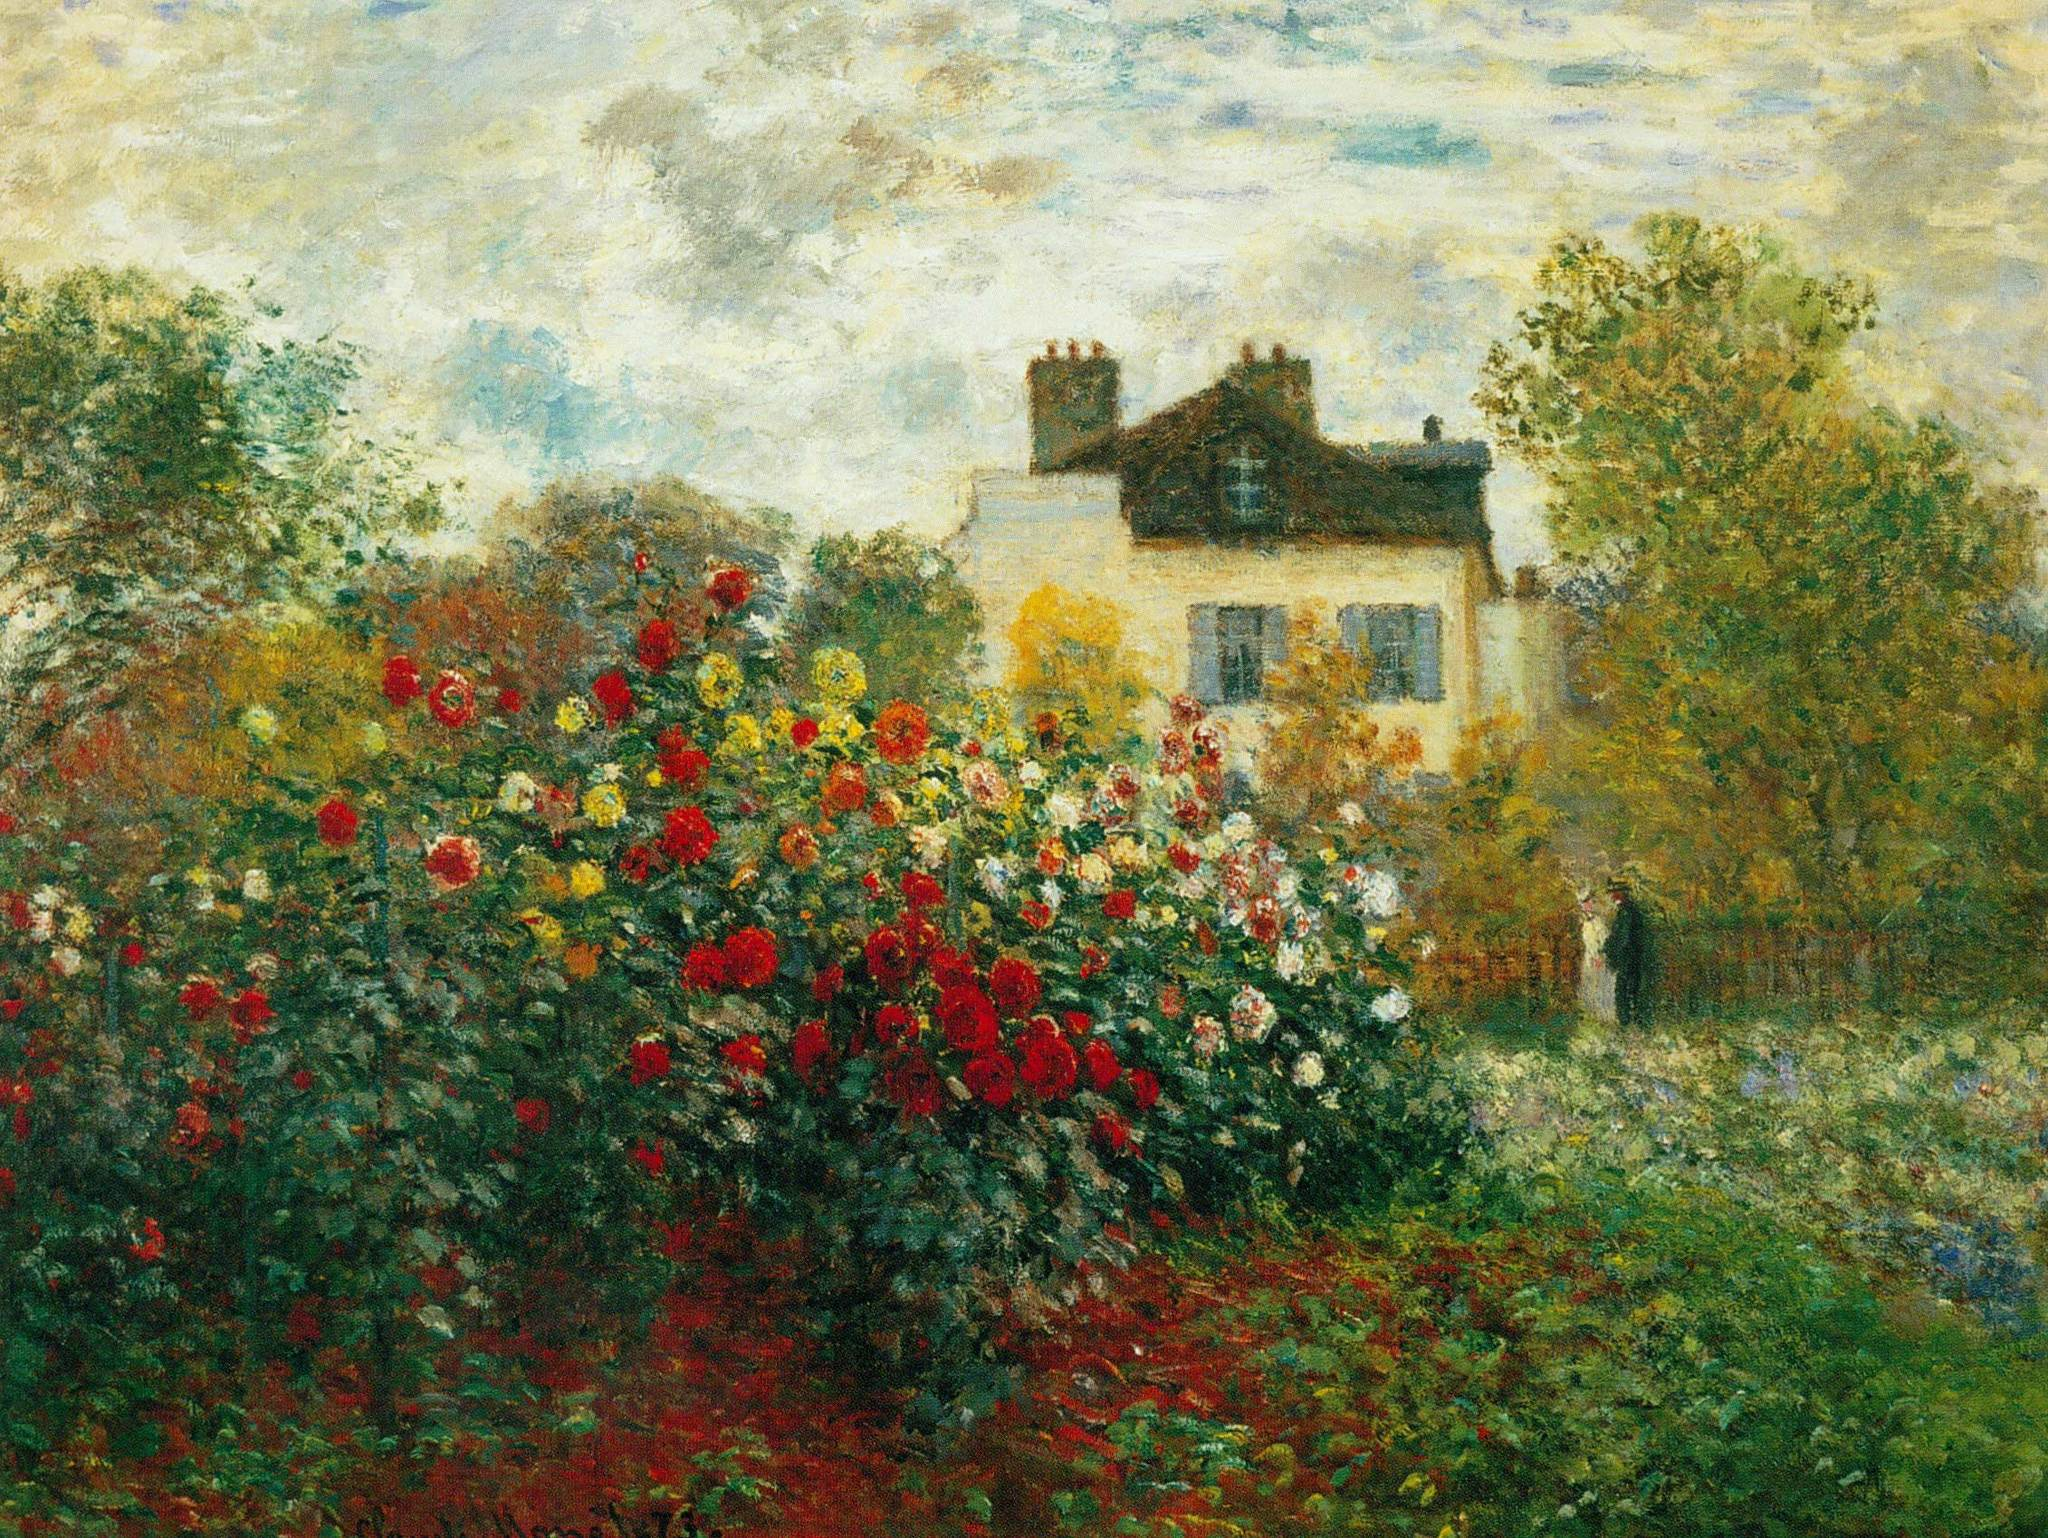 Claude Monet Garten Luxus Monet S Garden at Argenteuil by Claude Monet